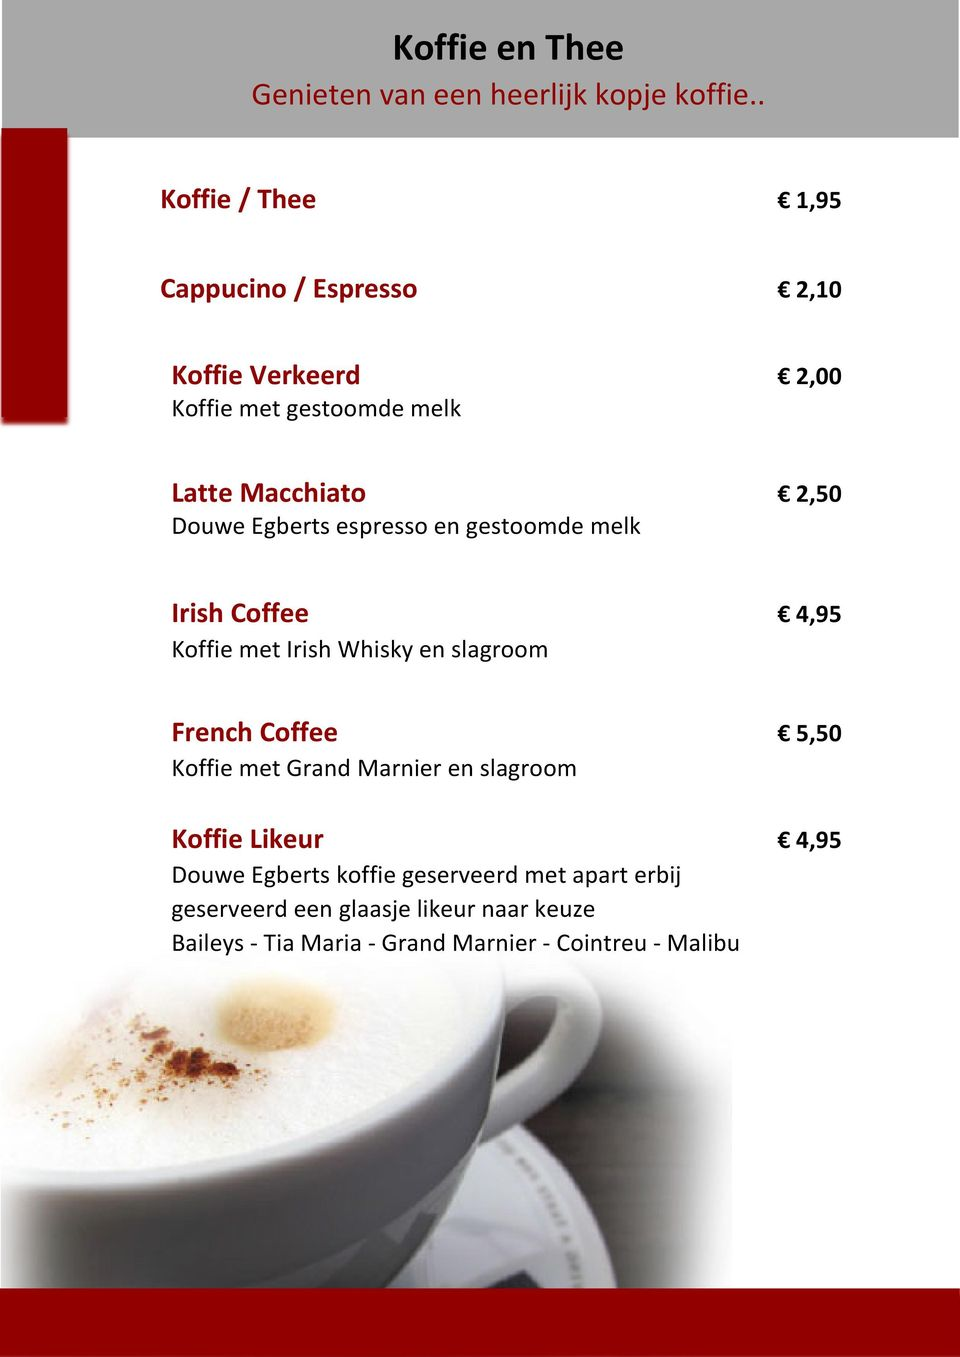 Egberts espresso en gestoomde melk Irish Coffee 4,95 Koffie met Irish Whisky en slagroom French Coffee 5,50 Koffie met